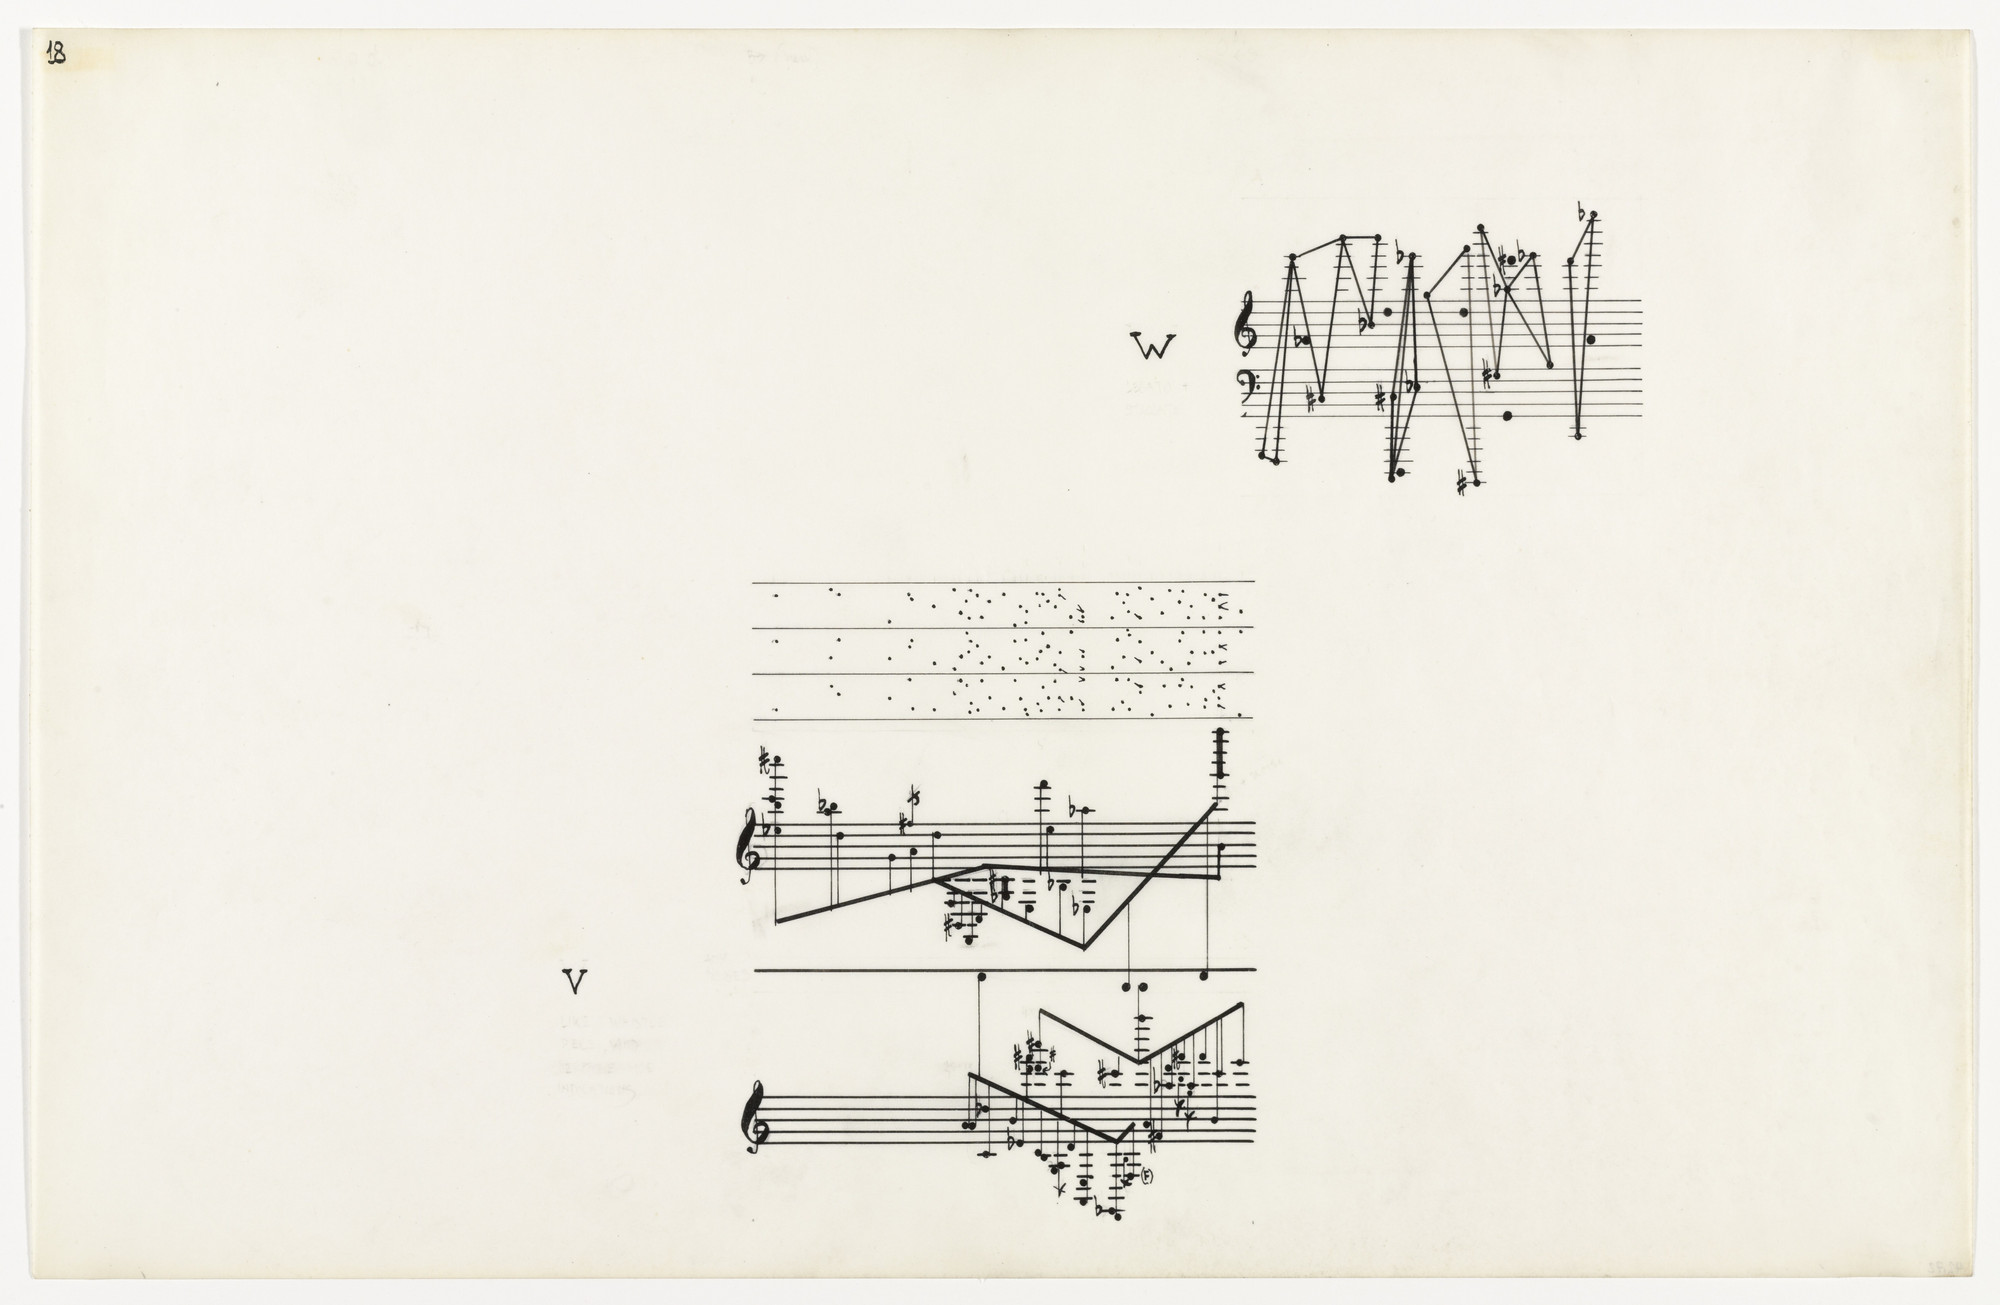 John Cage. Page 18, Solo for Piano, from Concert for Piano and Orchestra. 1958